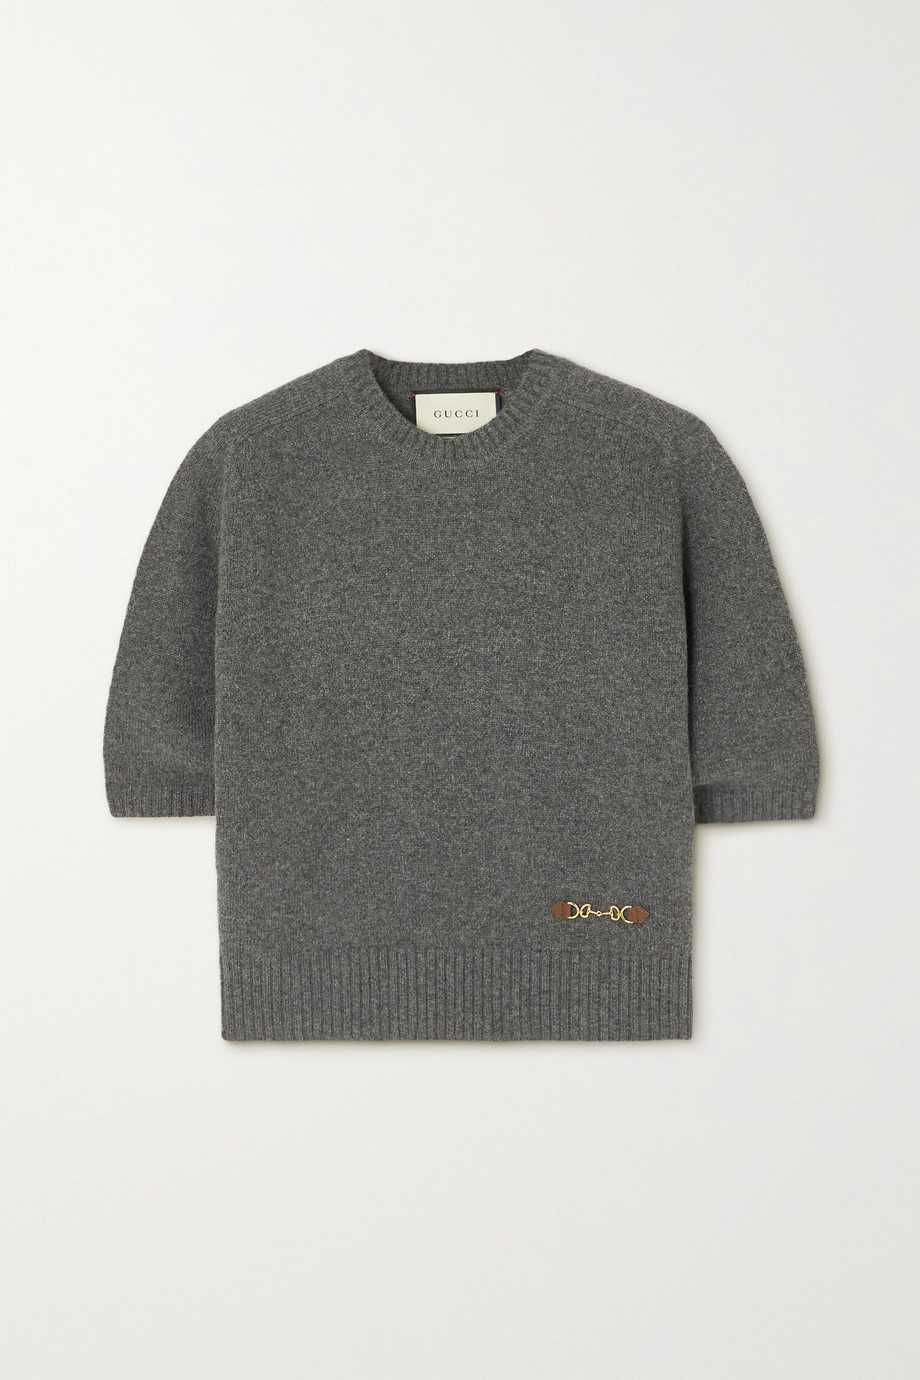 GUCCI Horsebit-detailed cashmere sweater